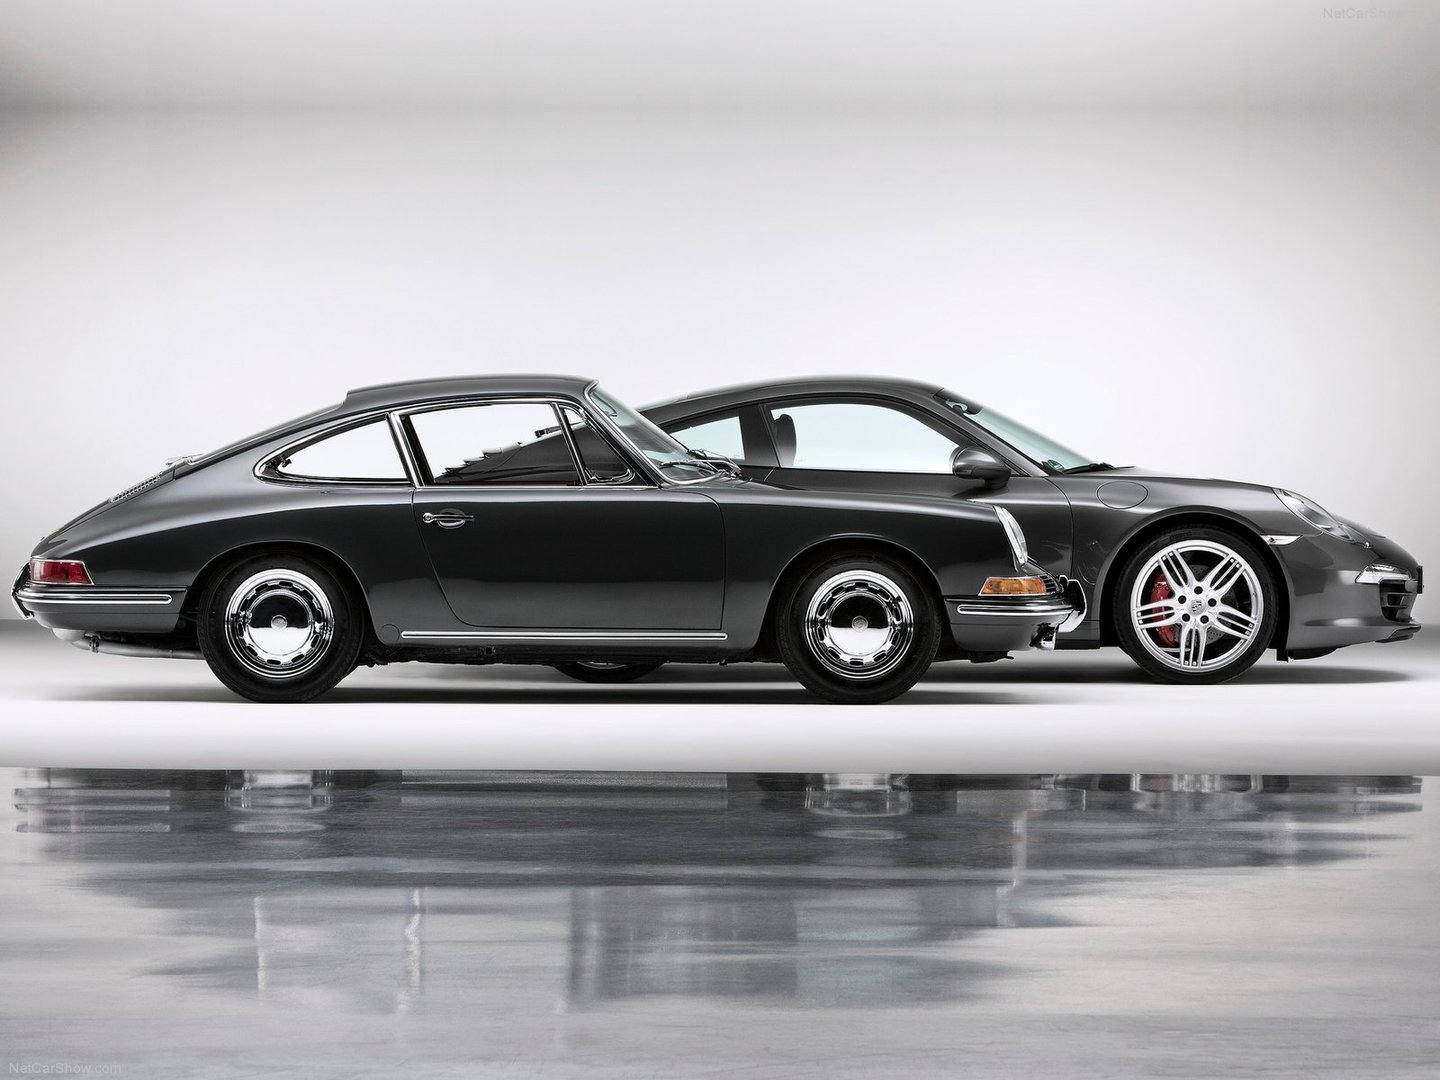 Porsche-911_2_0_Coupe_1964_1600x1200_wallpaper_07.jpg